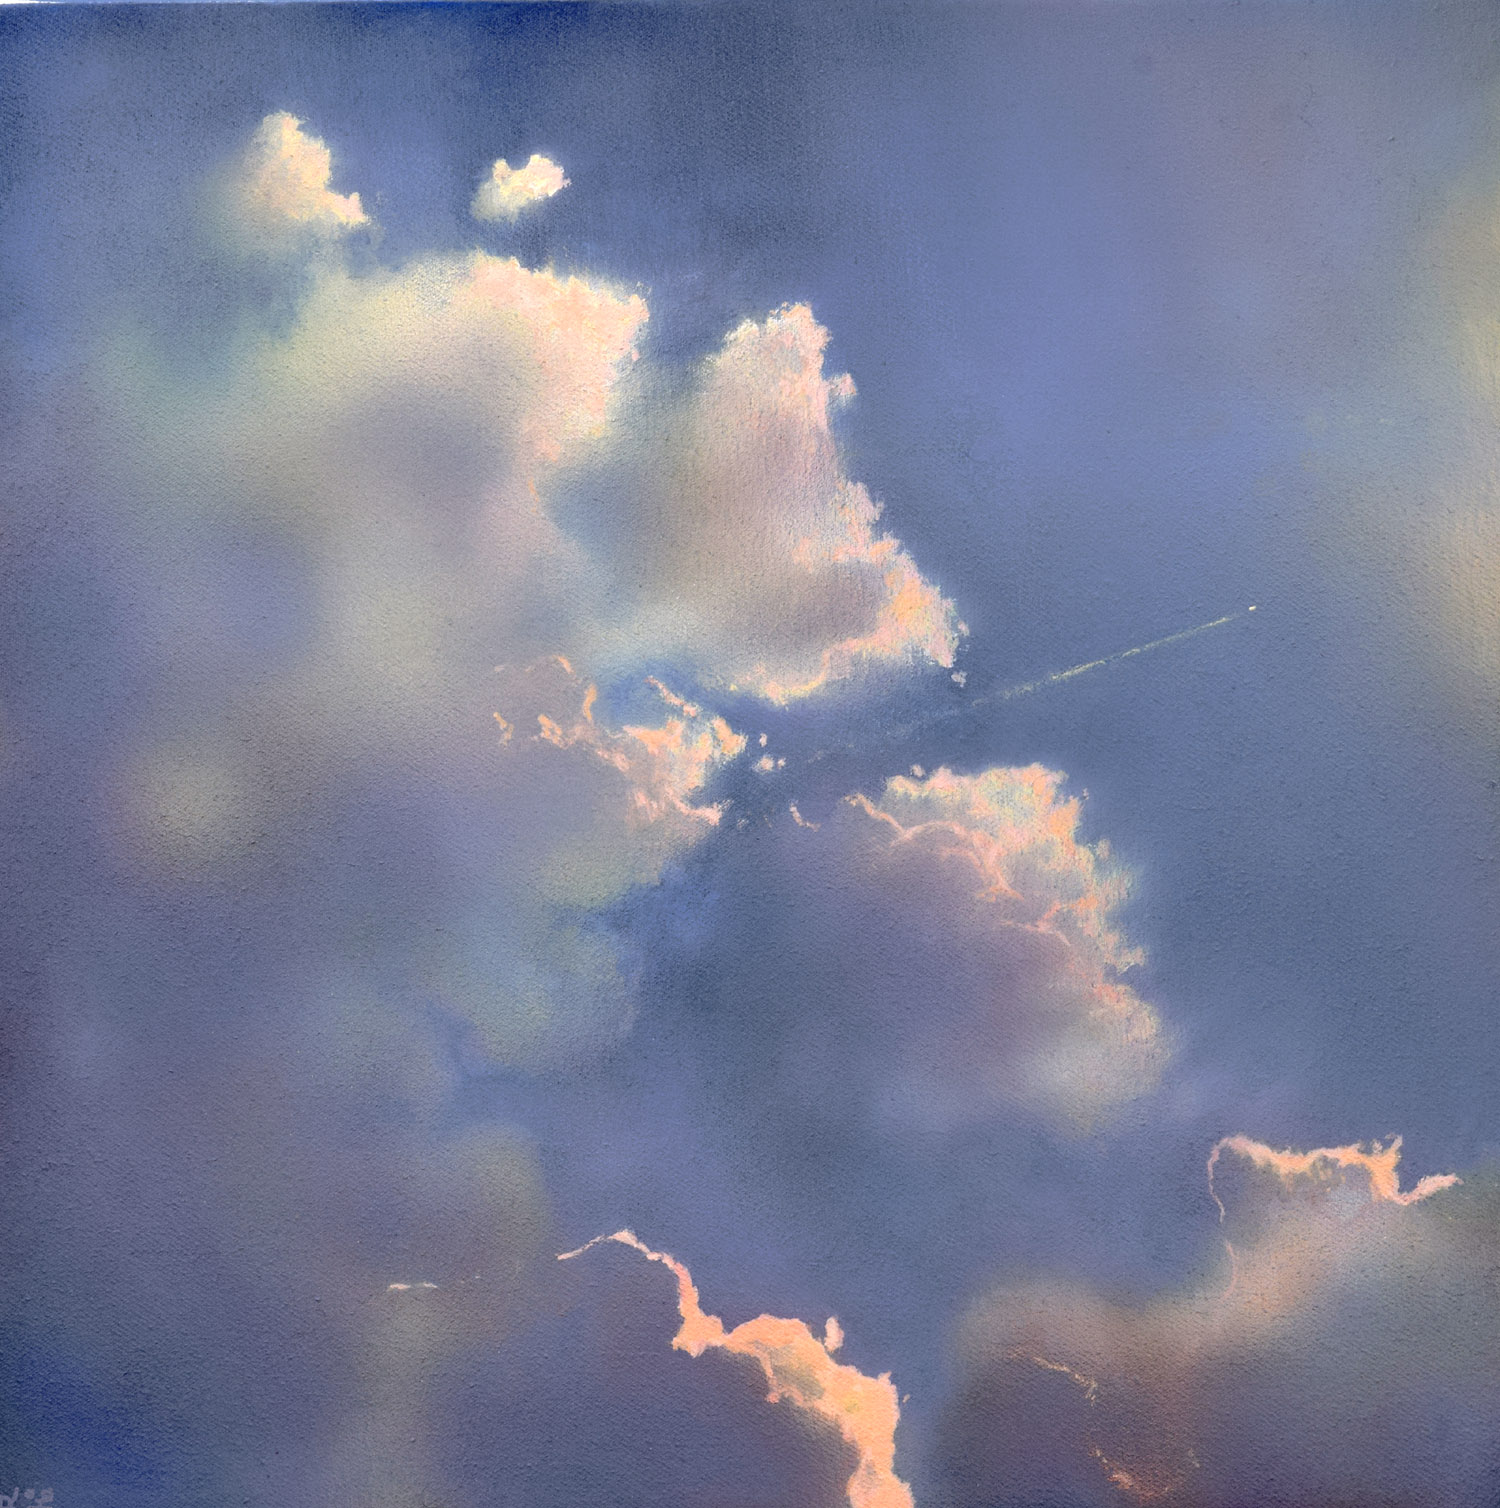 Icarus II by John O'Grady | An atmospheric skyscape on canvas with large clouds edged with pink light